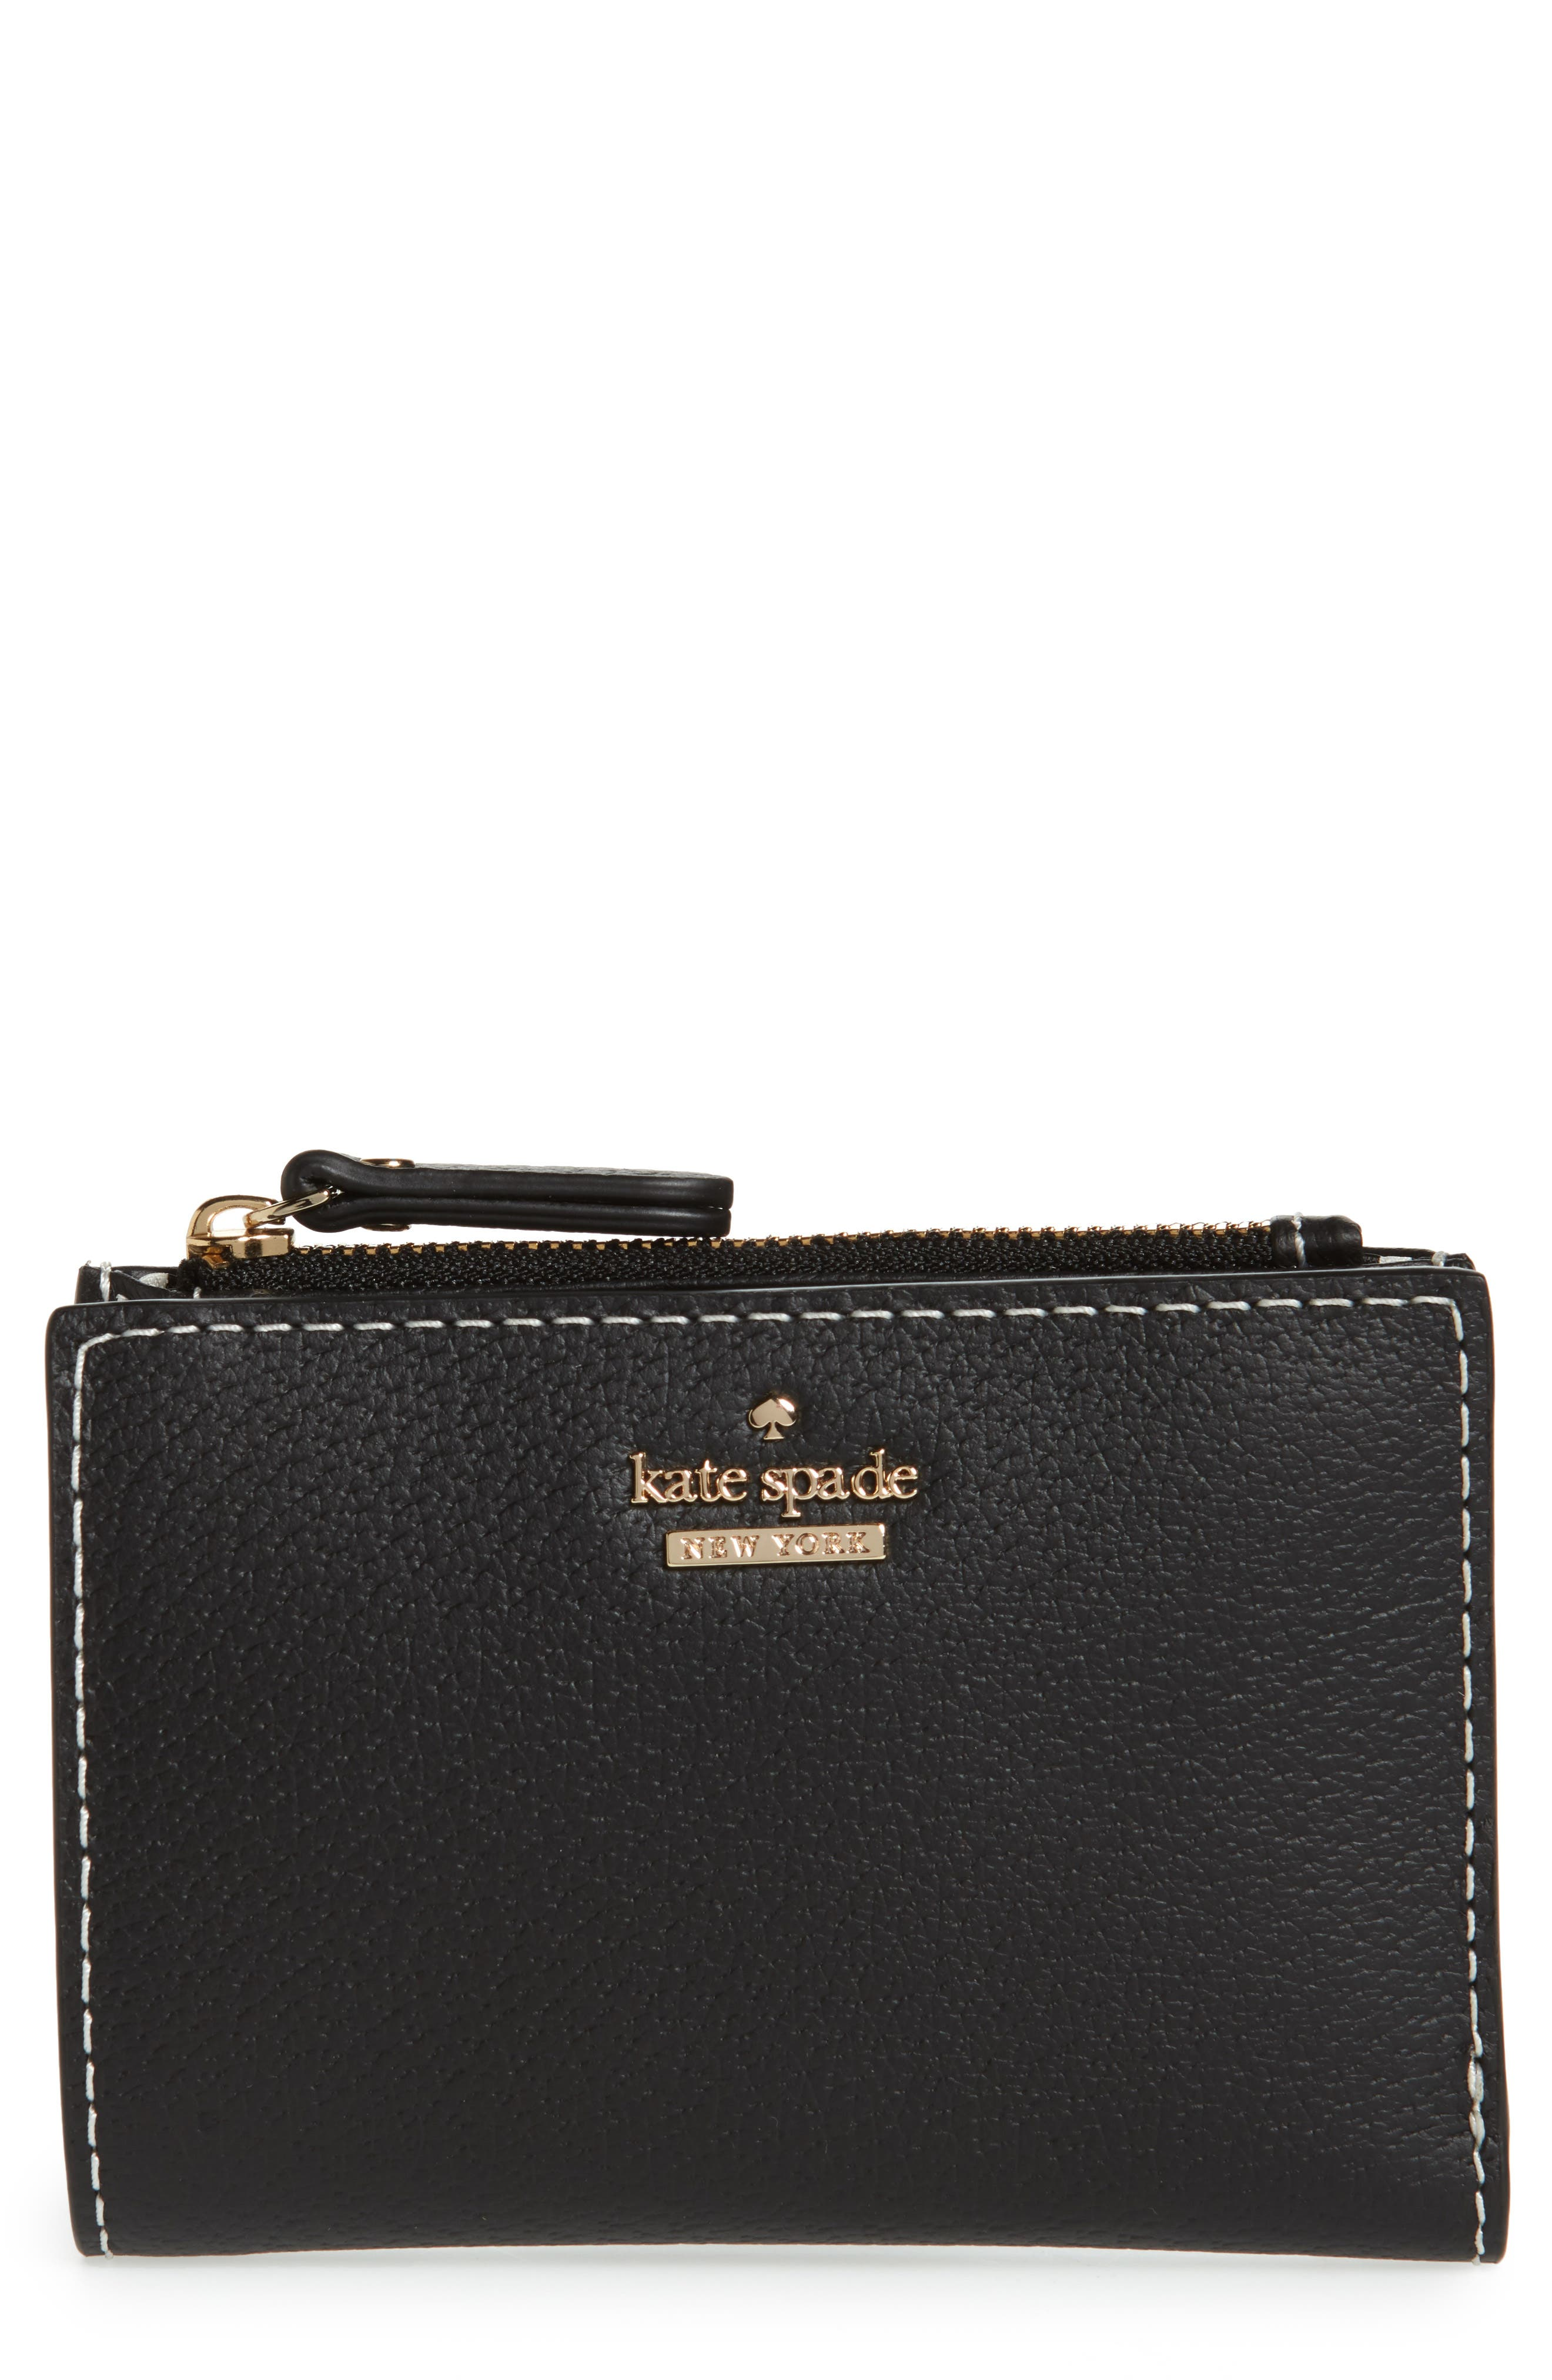 thompson street – abri leather wallet,                         Main,                         color, Black